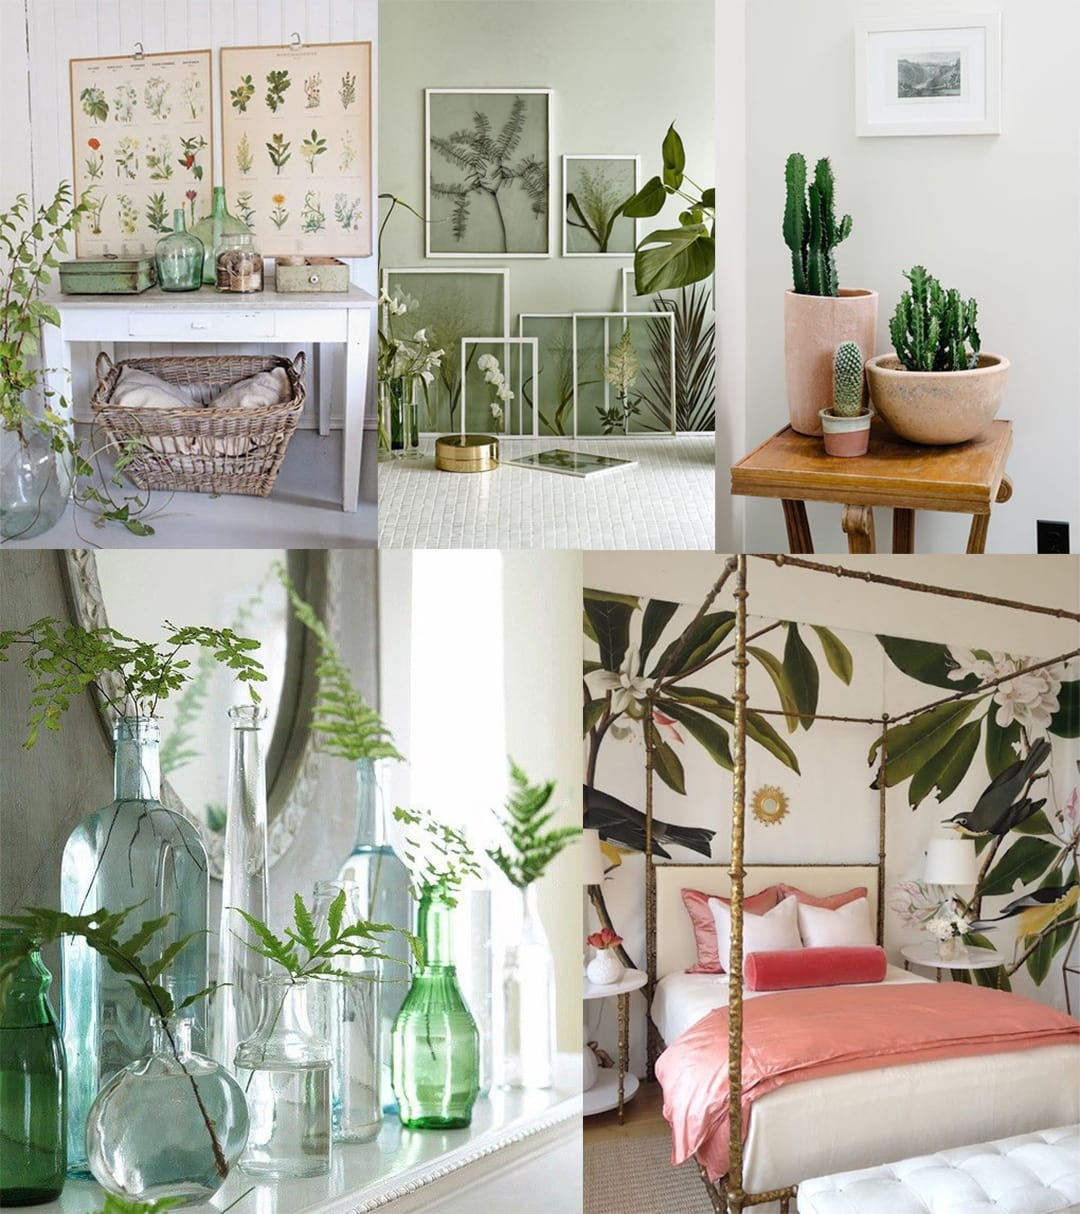 2017 Decor Trends: Botanical Spaces